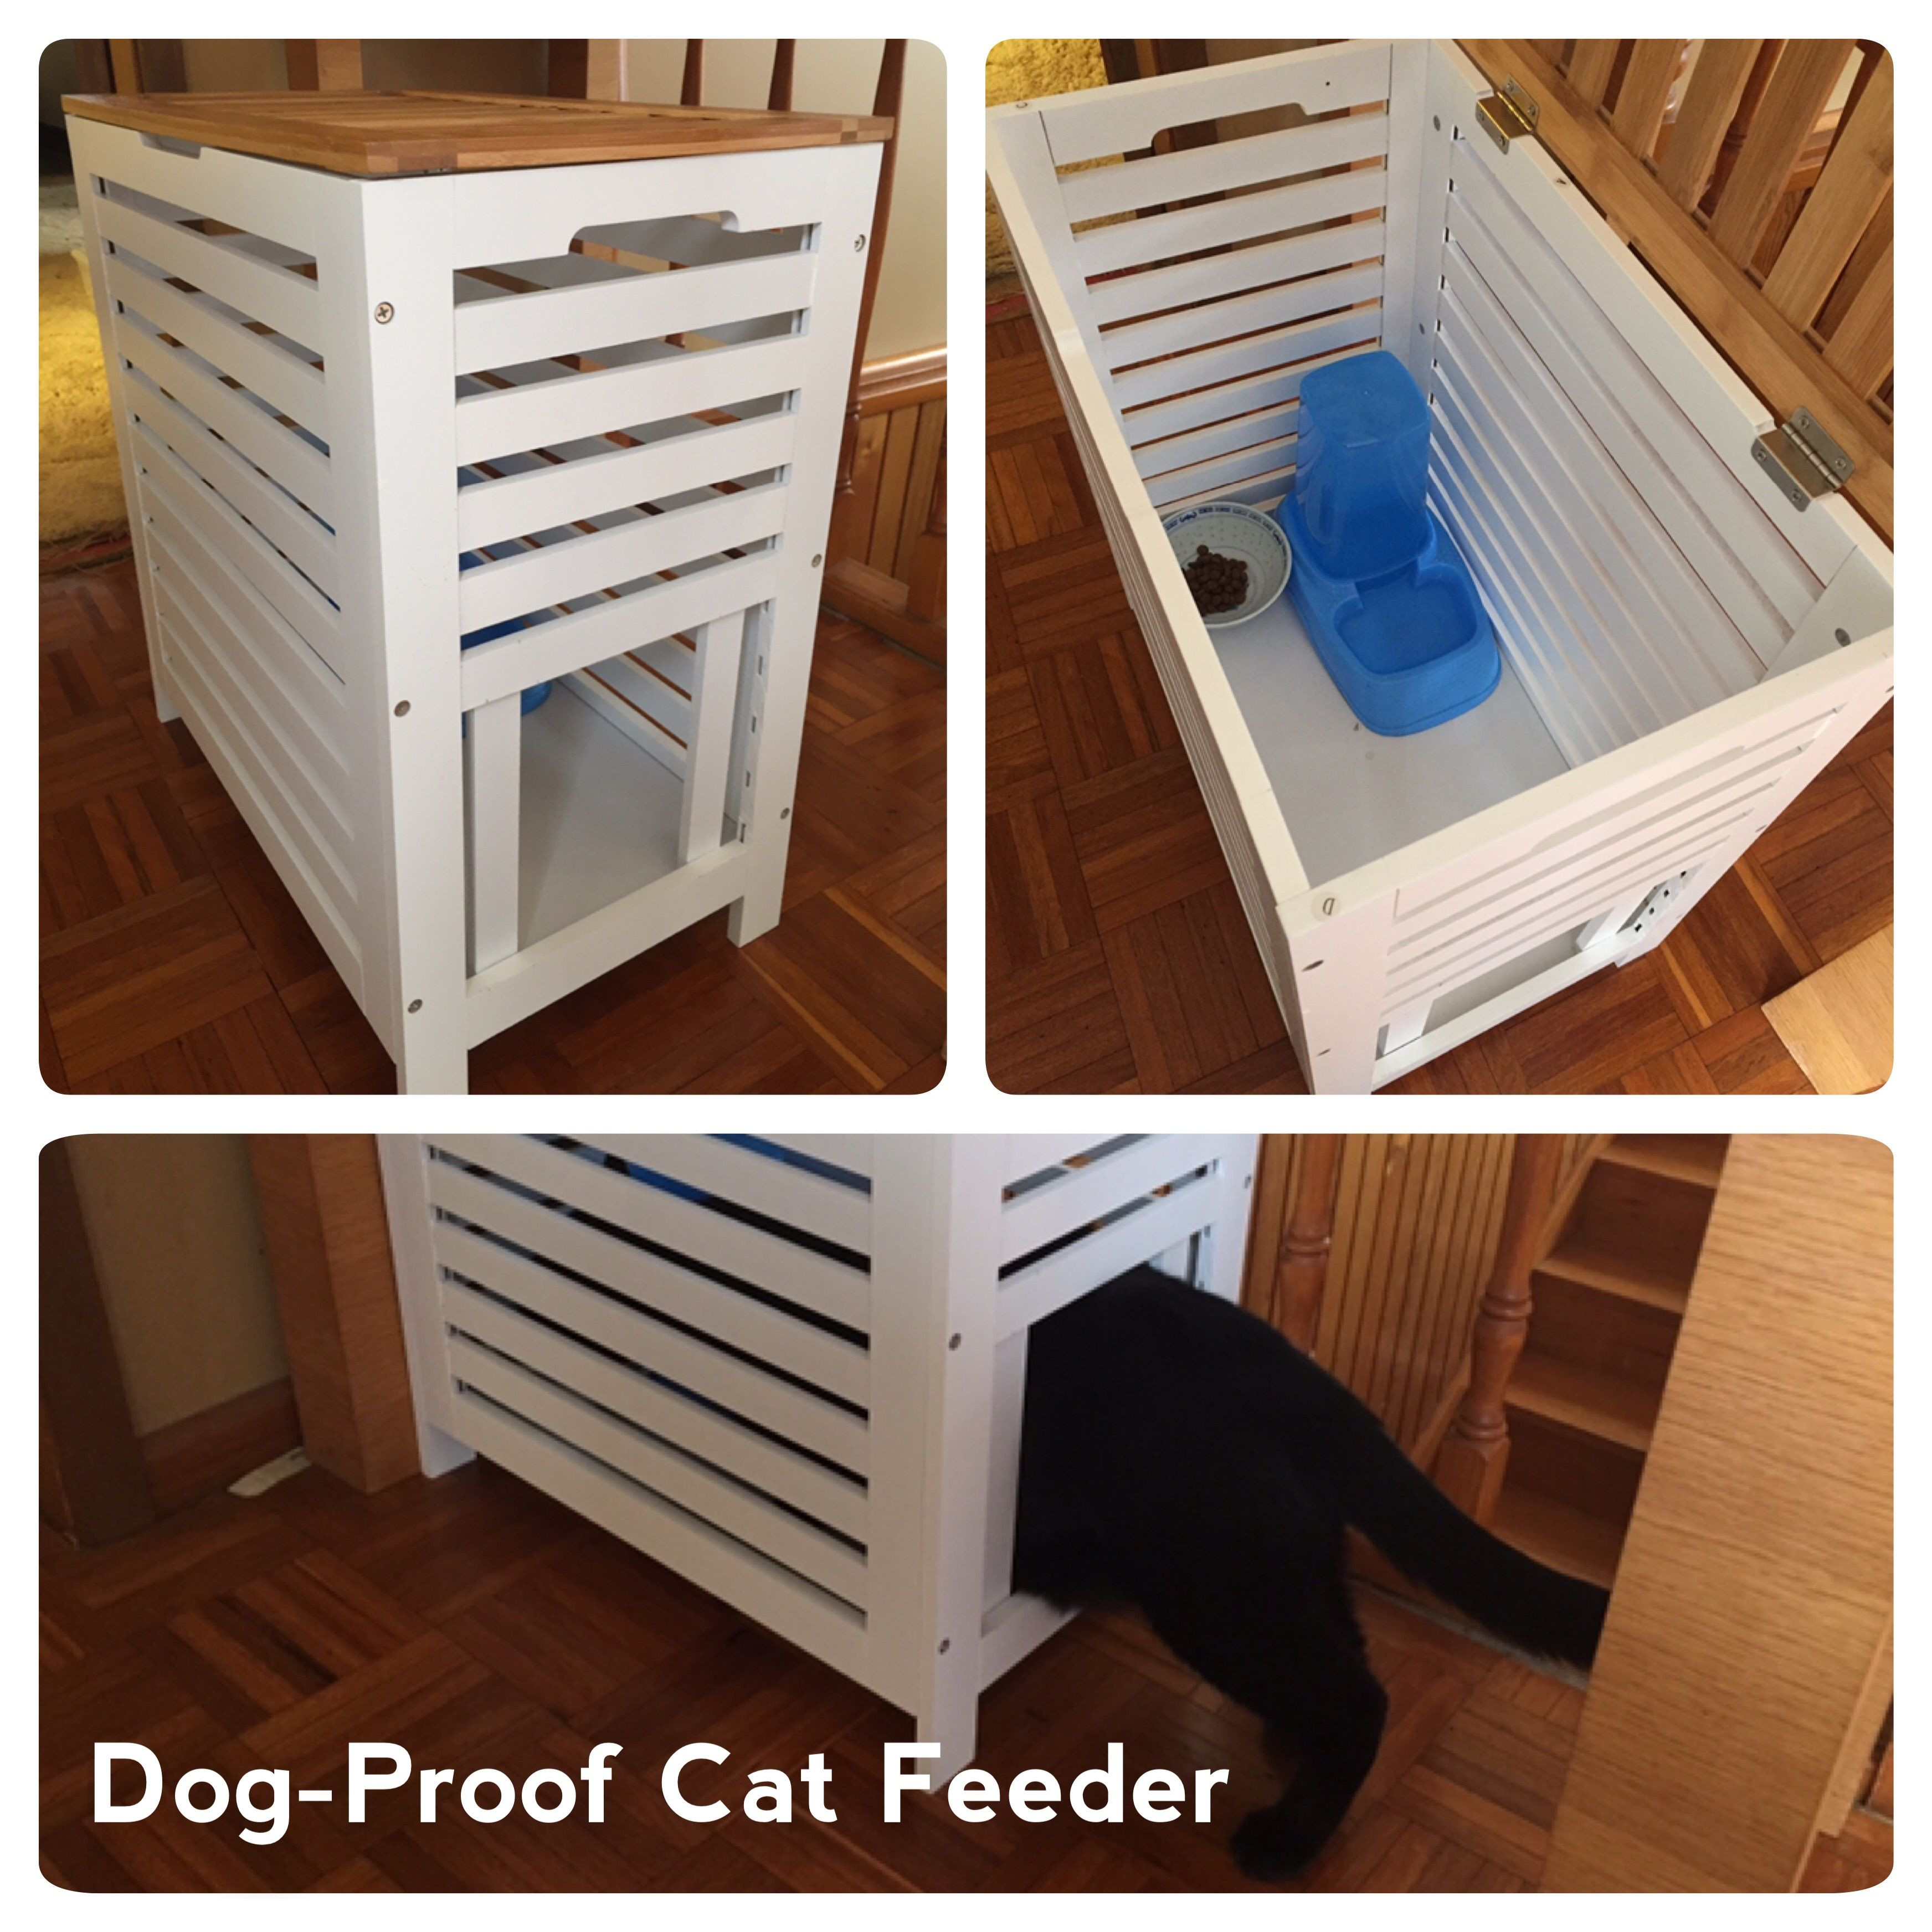 Best ideas about Dog Proof Cat Feeder DIY . Save or Pin Dog Proof Cat Feeder Kmart Hack Remove 4 horizontal slats Now.